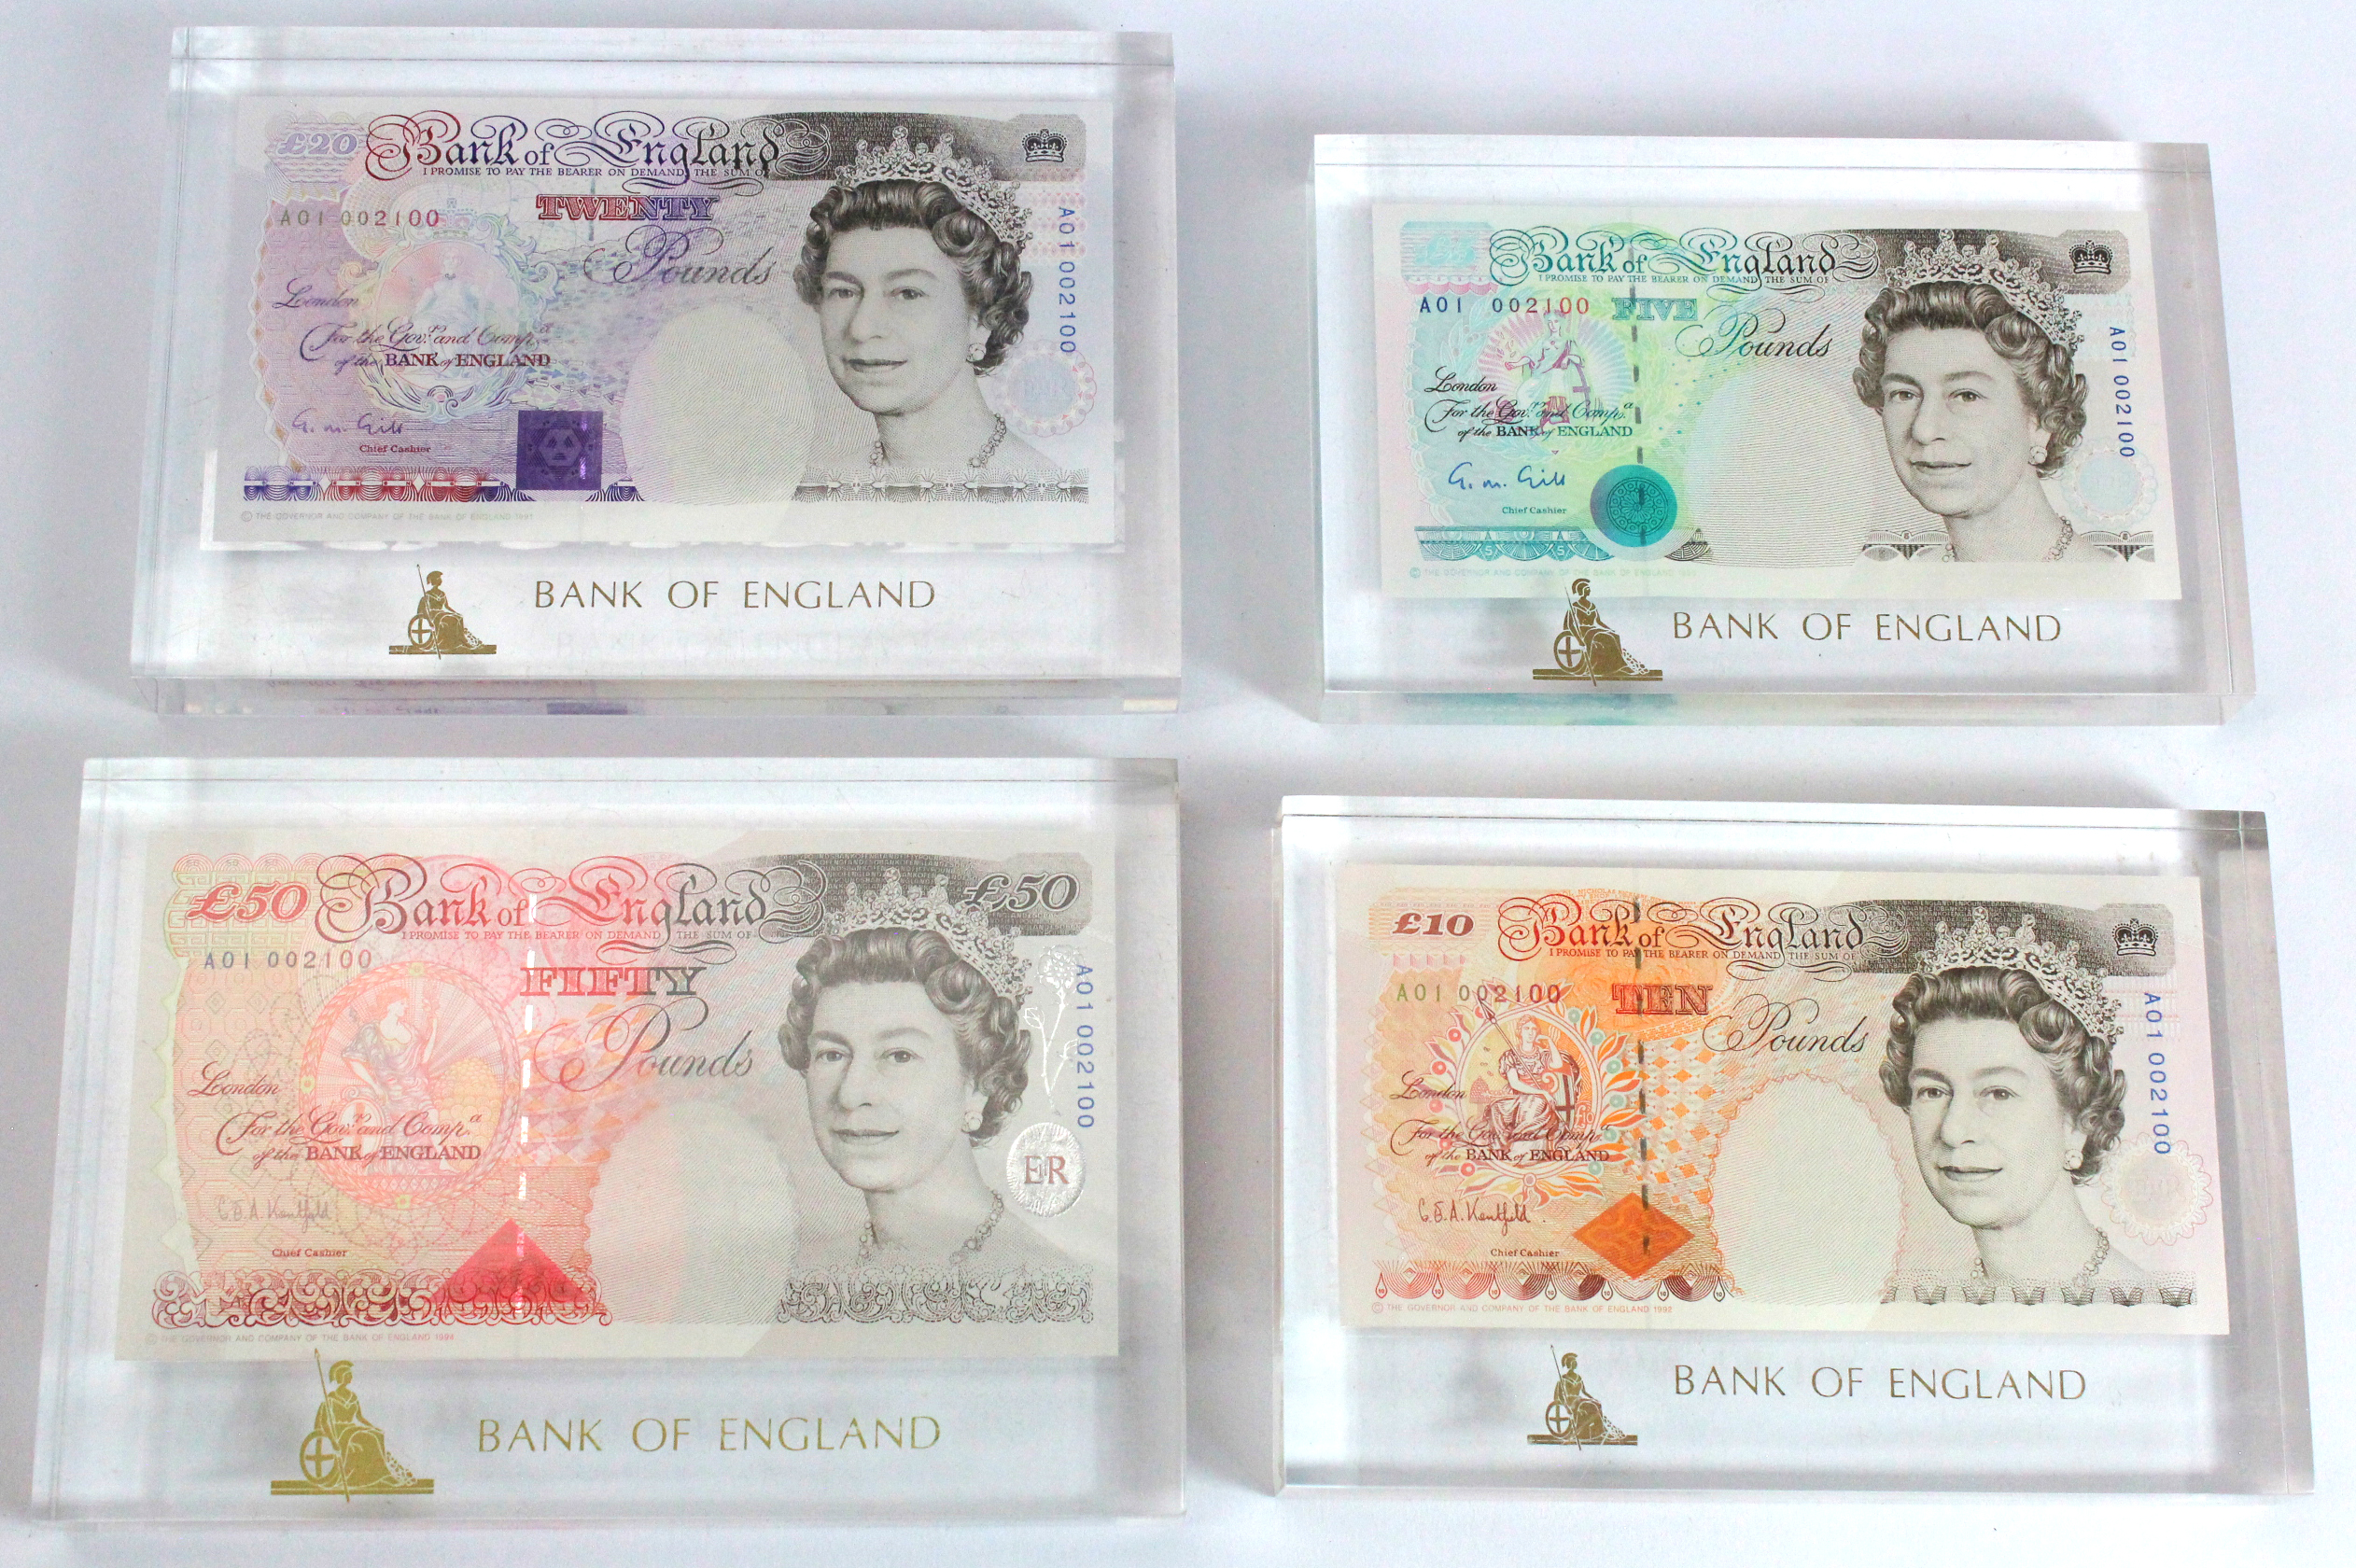 Bank of England (4), a nice set of FIRST RUN notes with MATCHING serial numbers A01 002100,